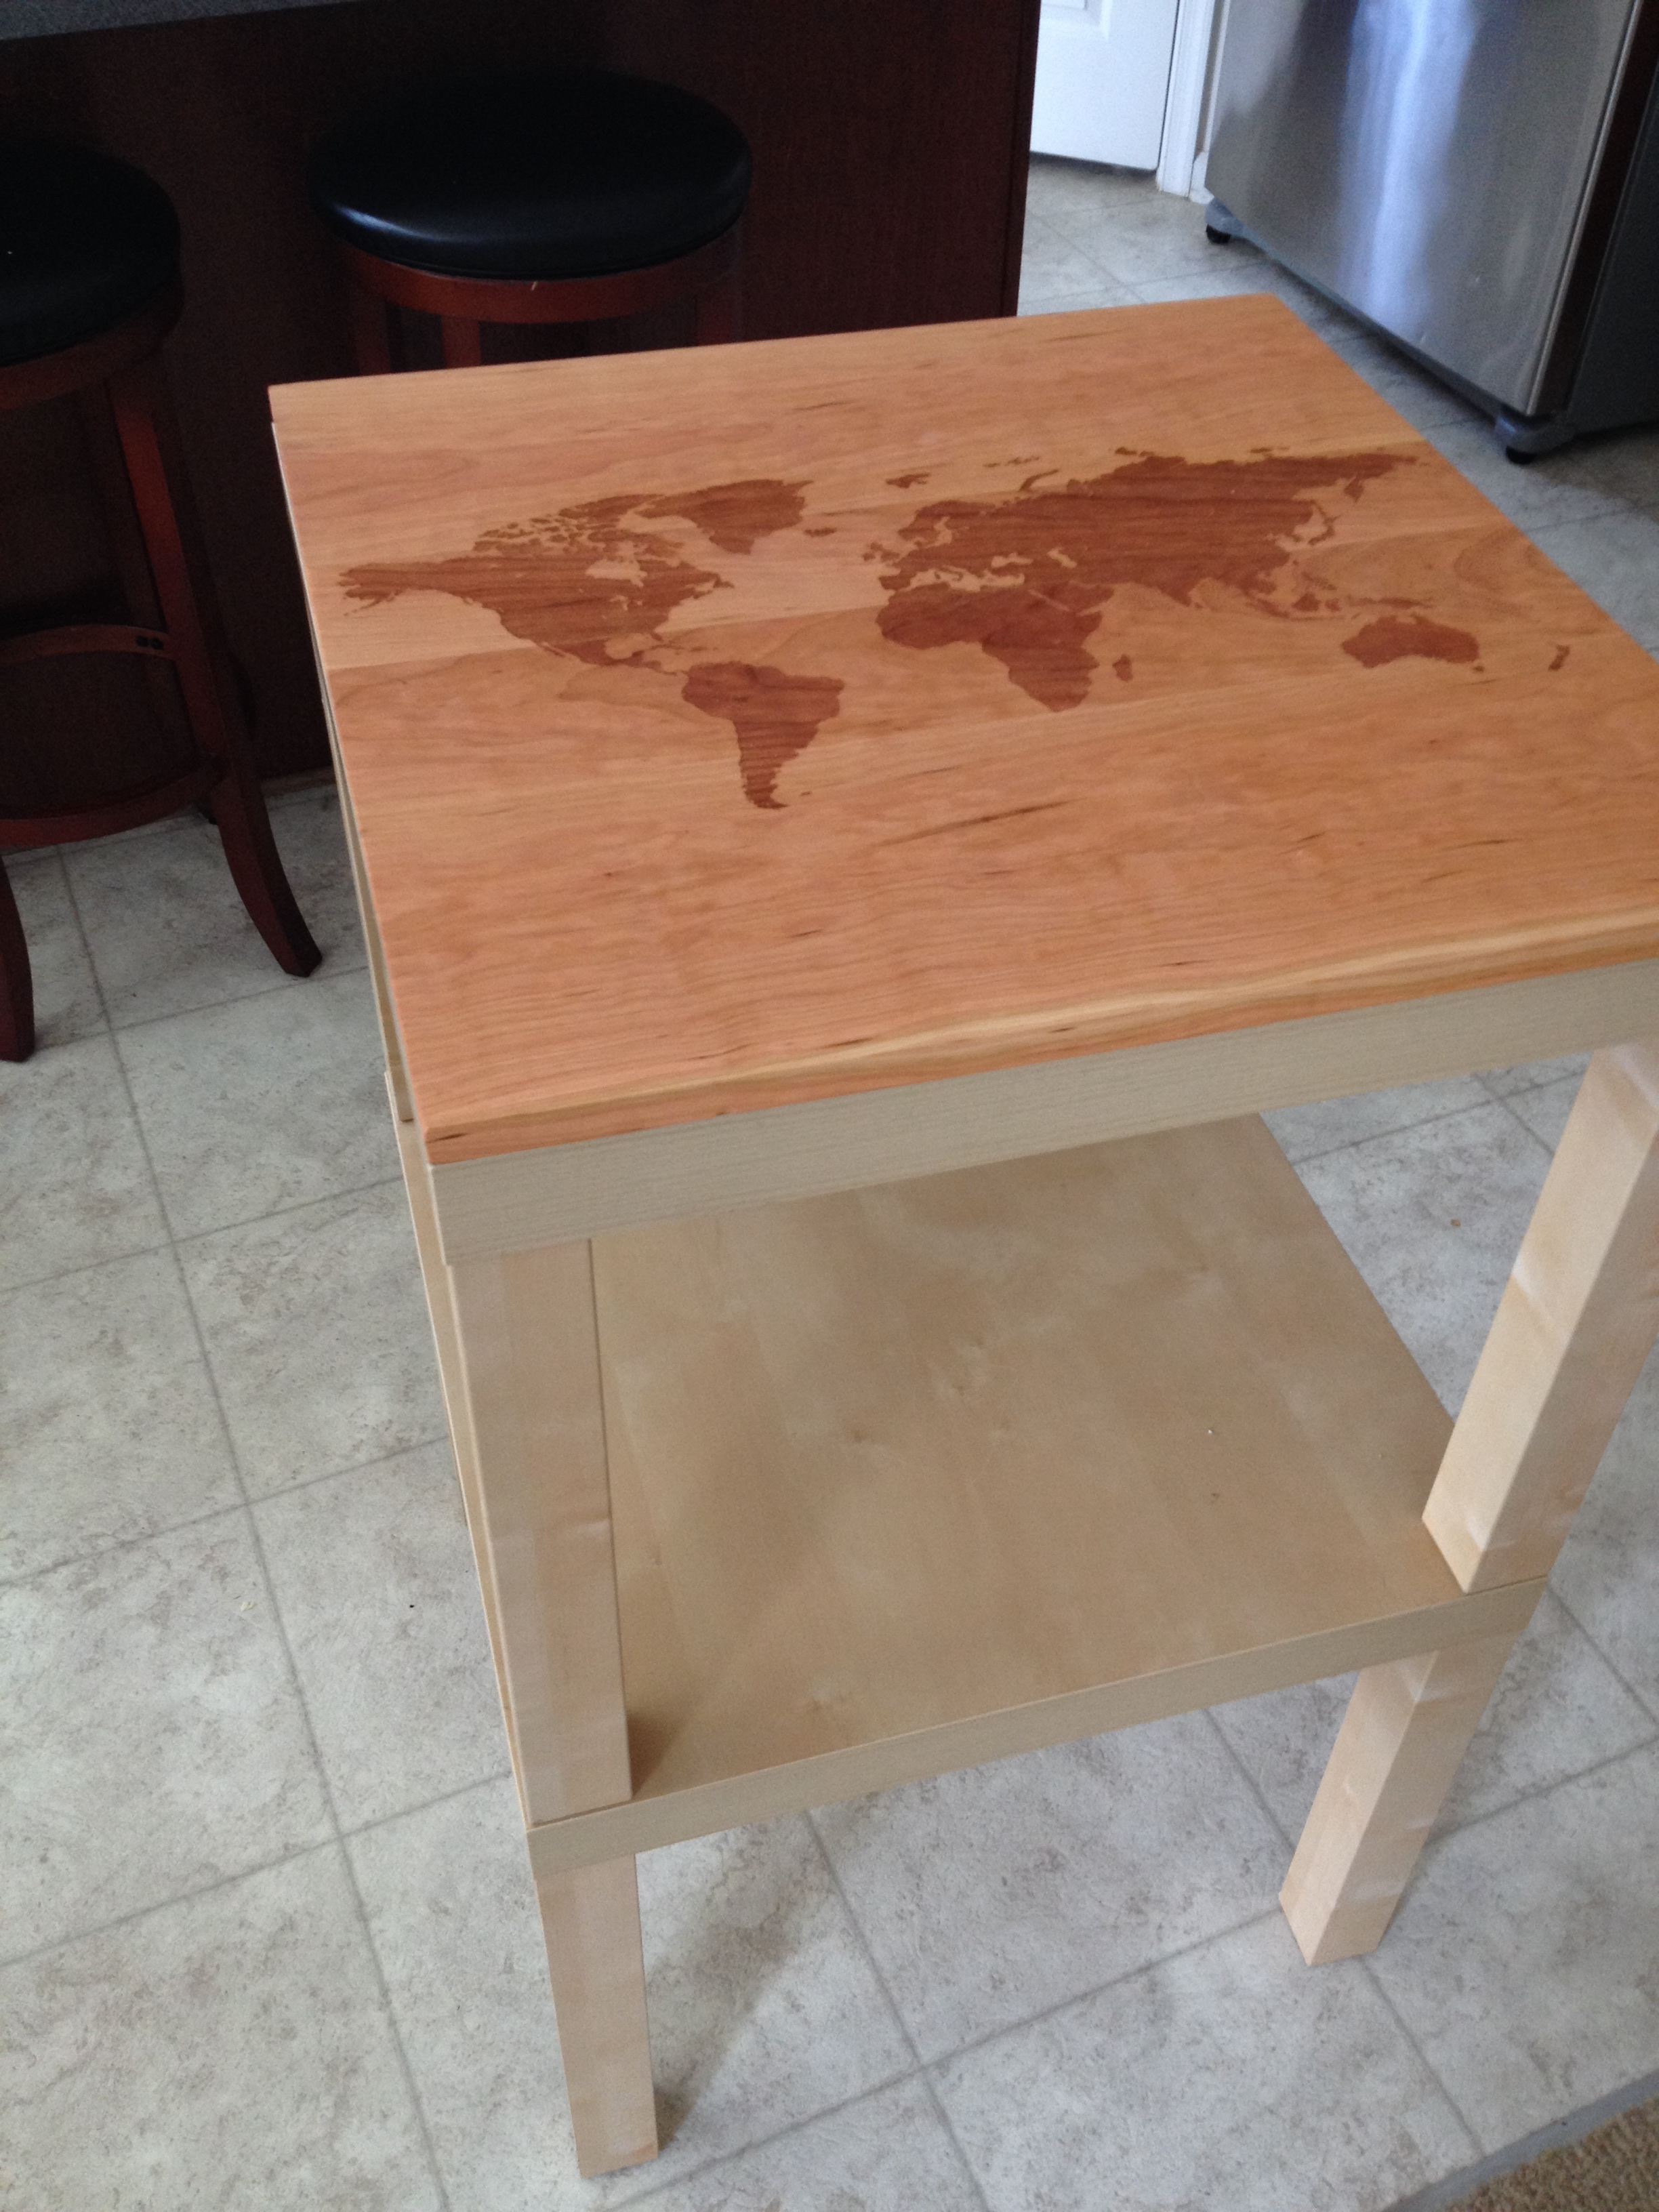 My Ikea Lack Table Hack  thebusybeecrafter